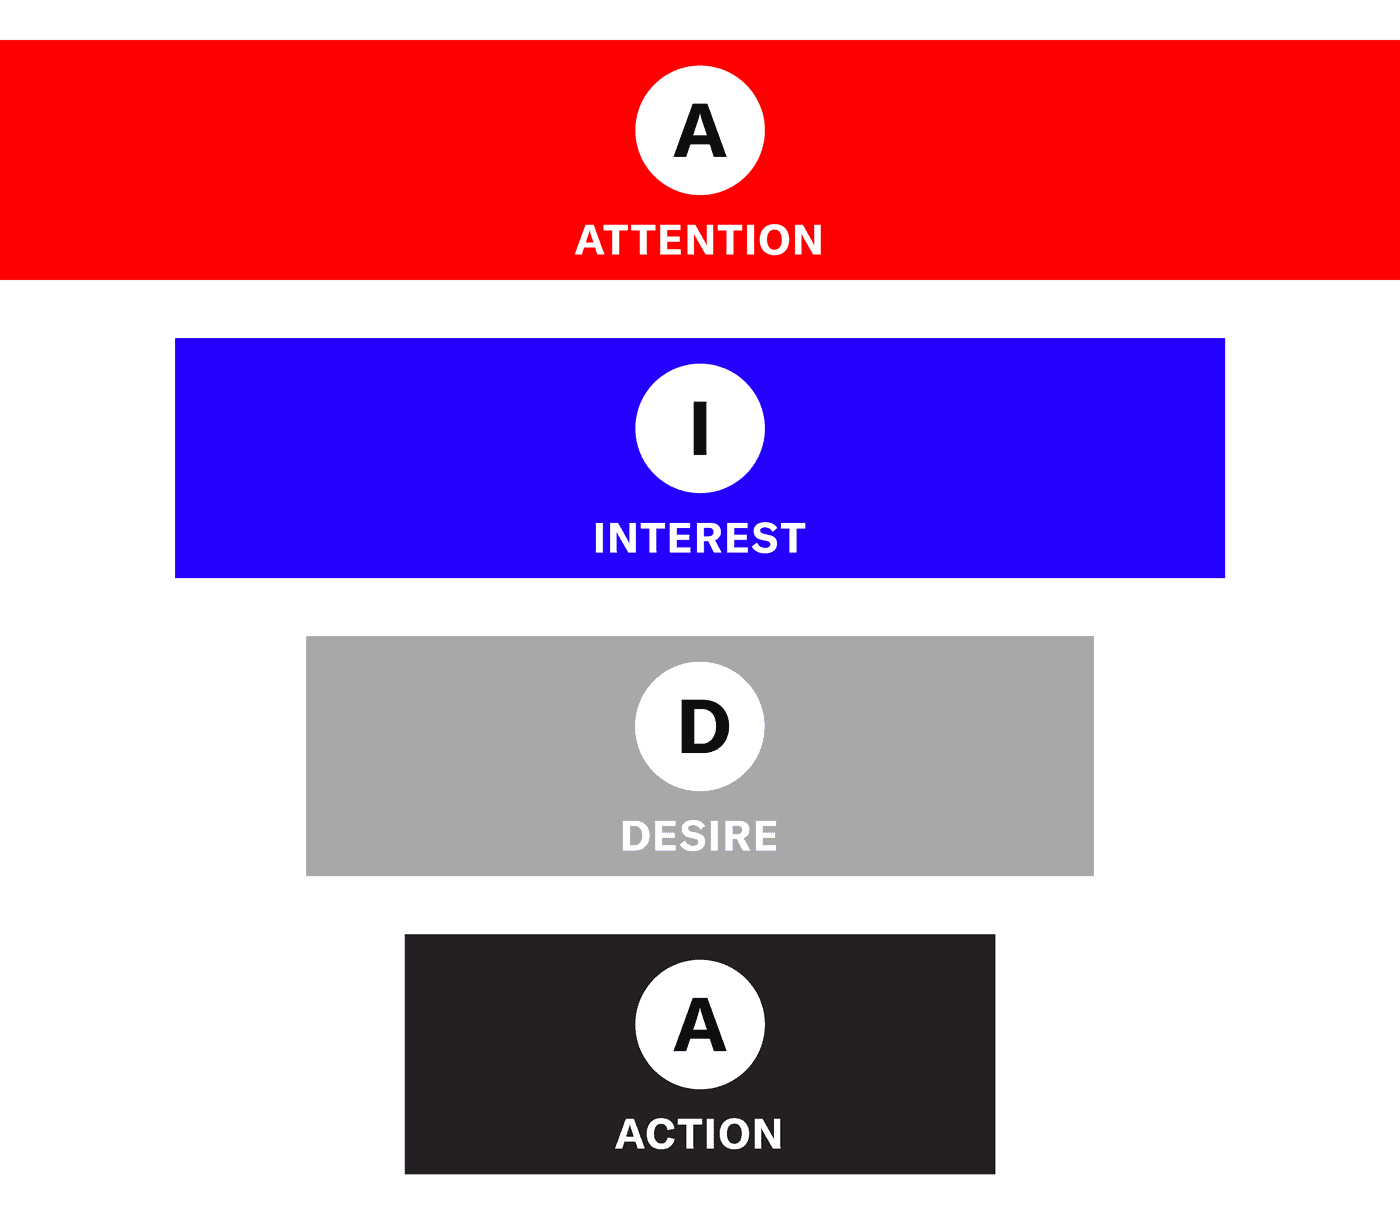 aida model: attention, interest, desire, call to action